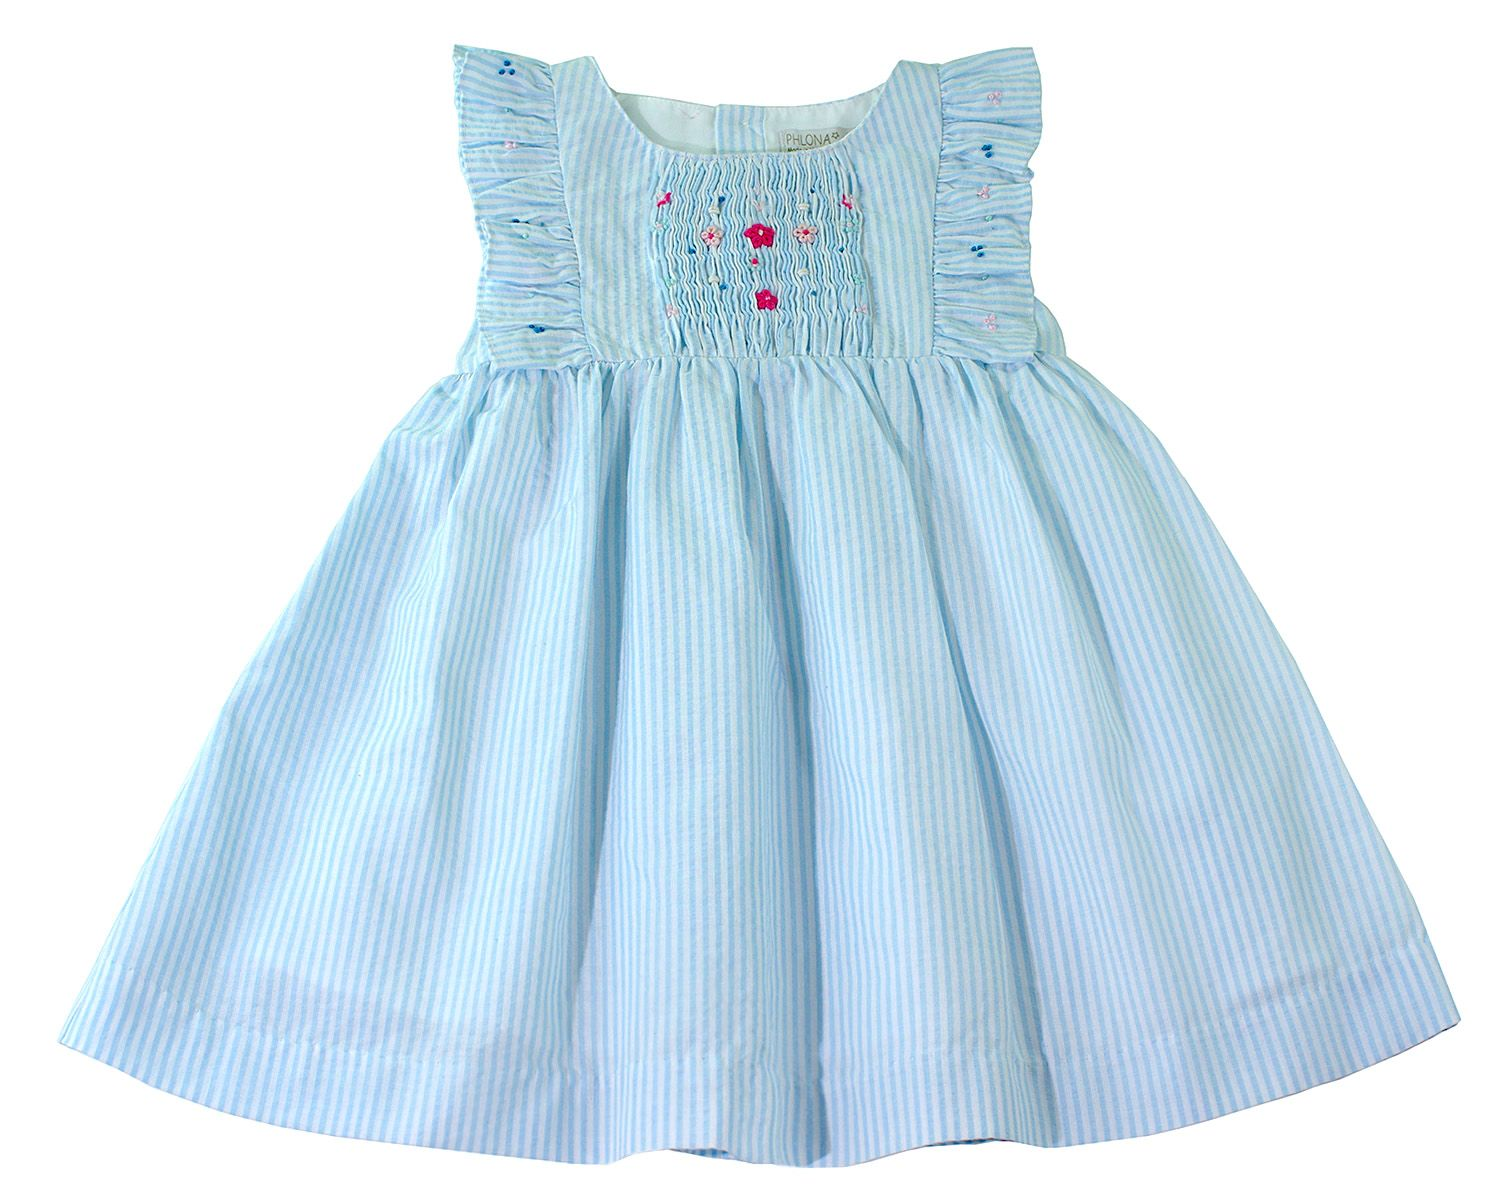 9a5d6687a8 Girls Smocked Dresses Size 7